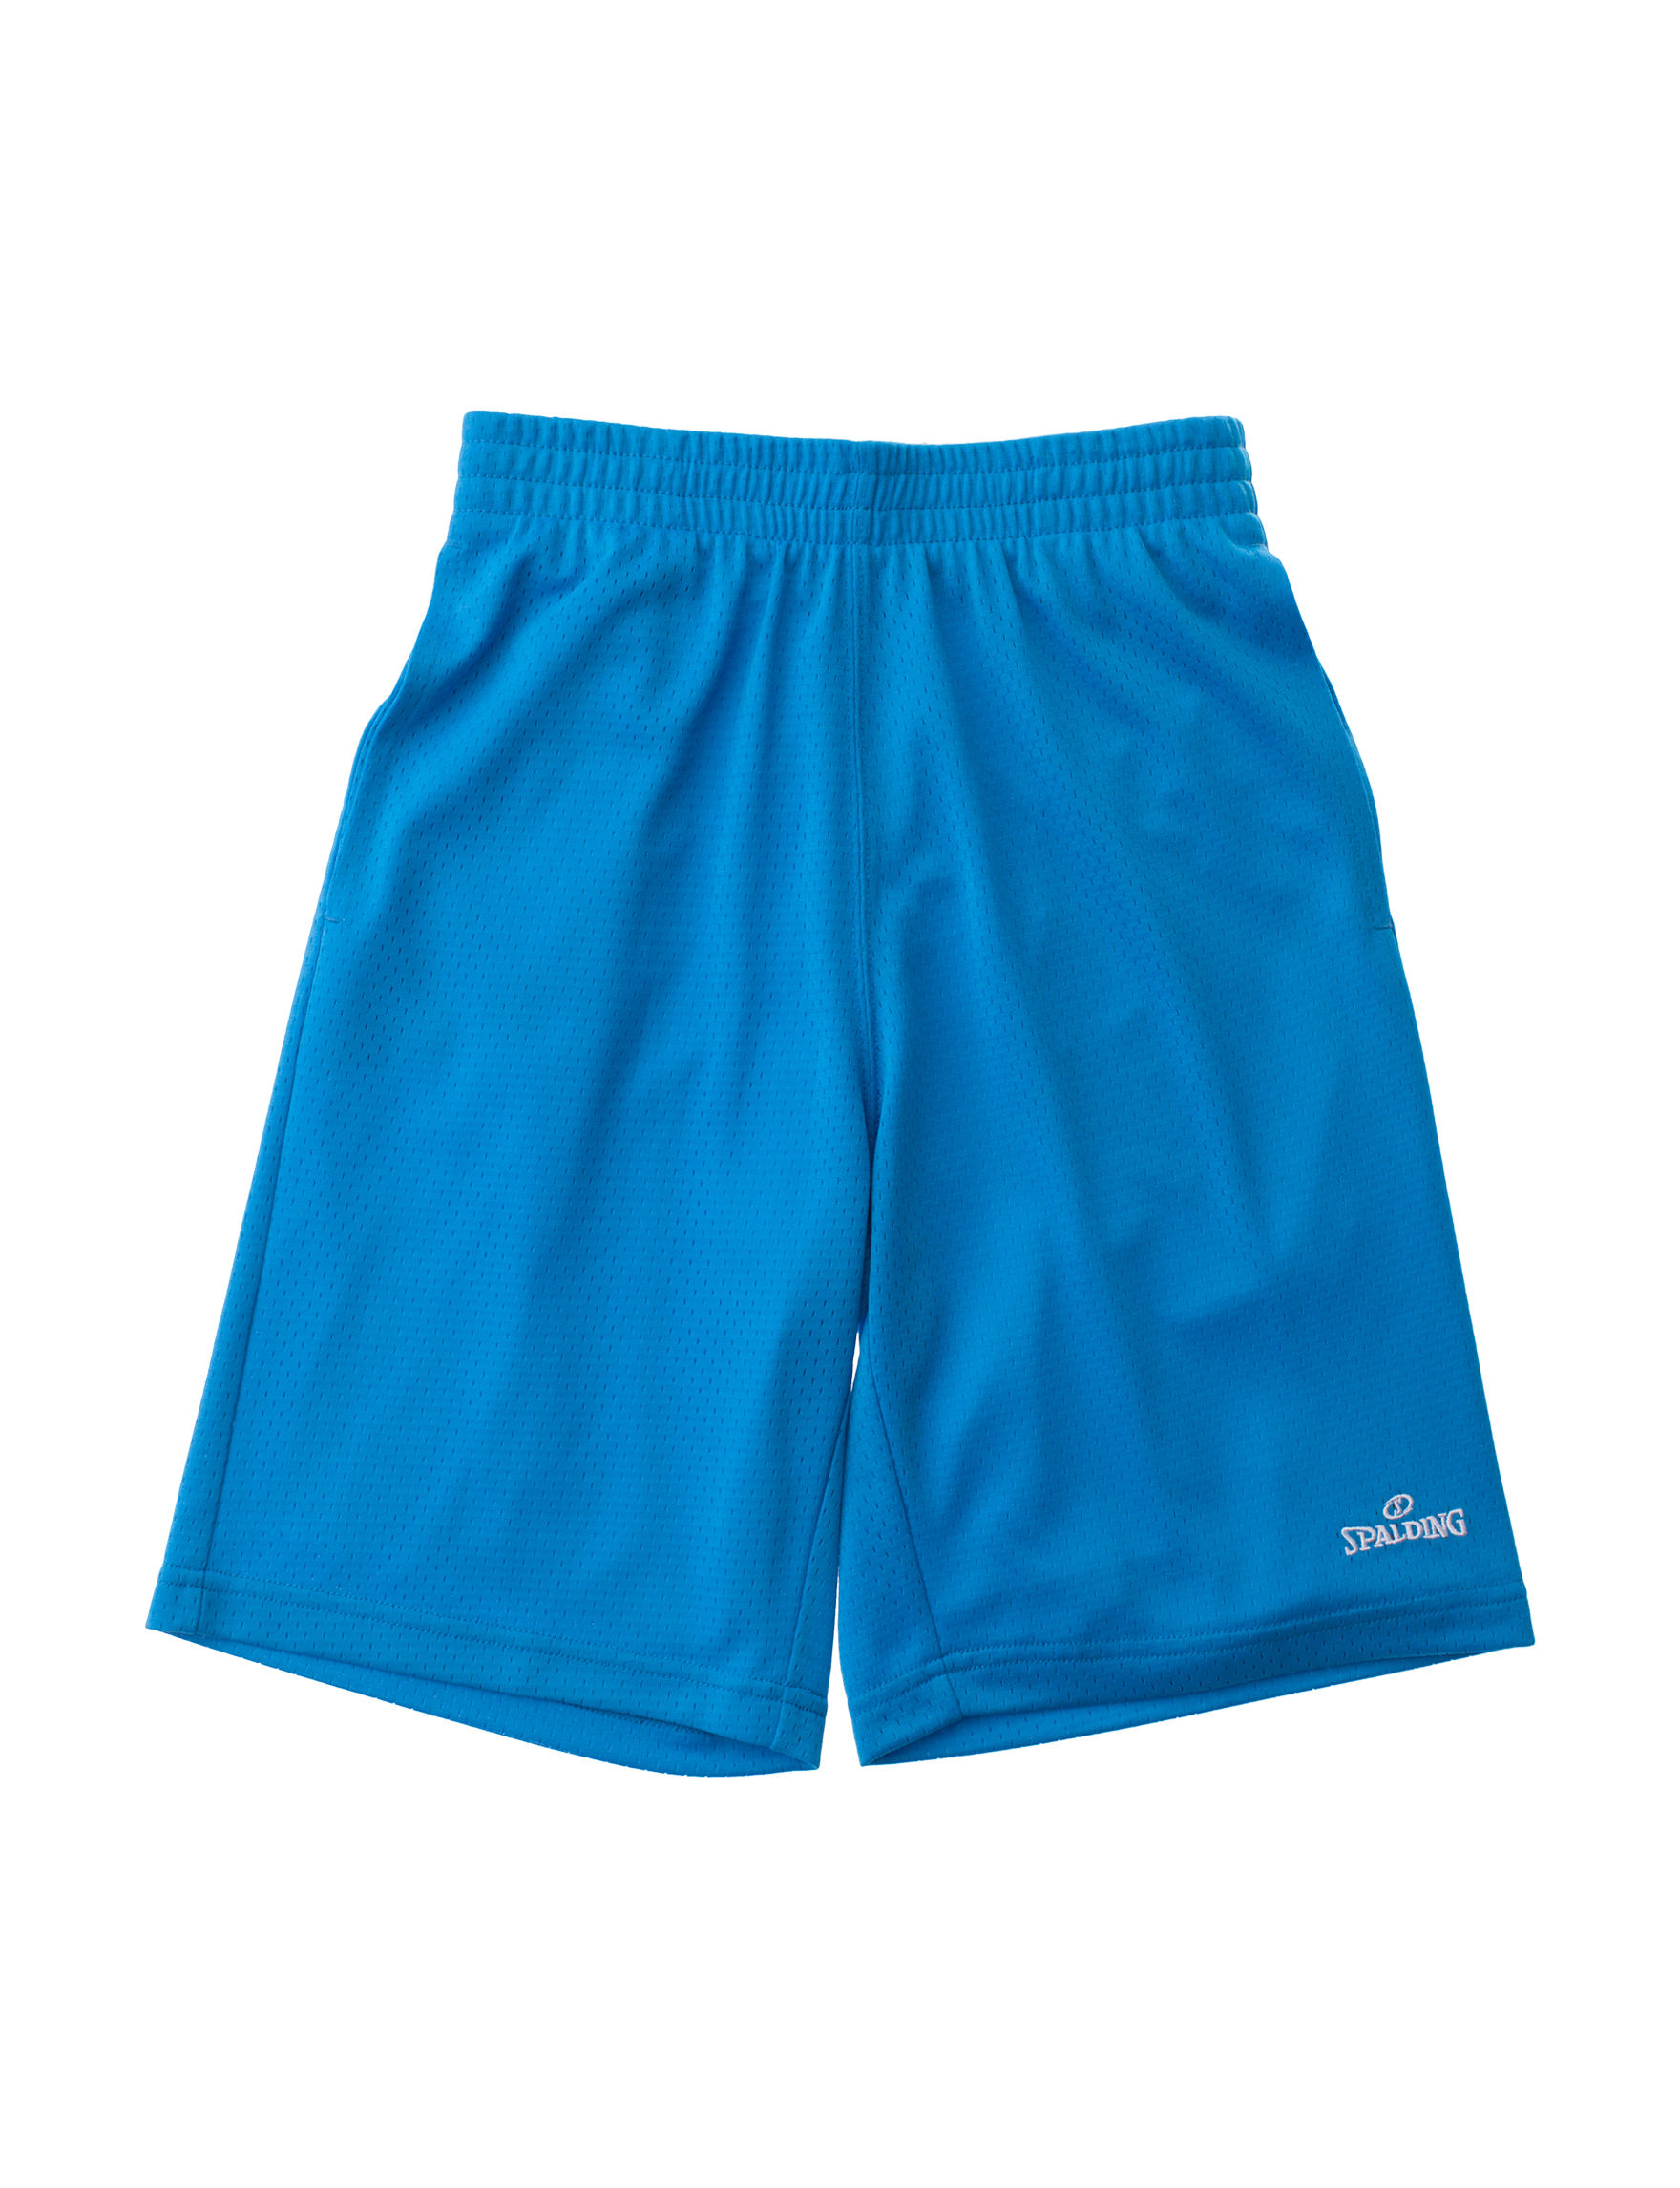 Spalding Blue Relaxed